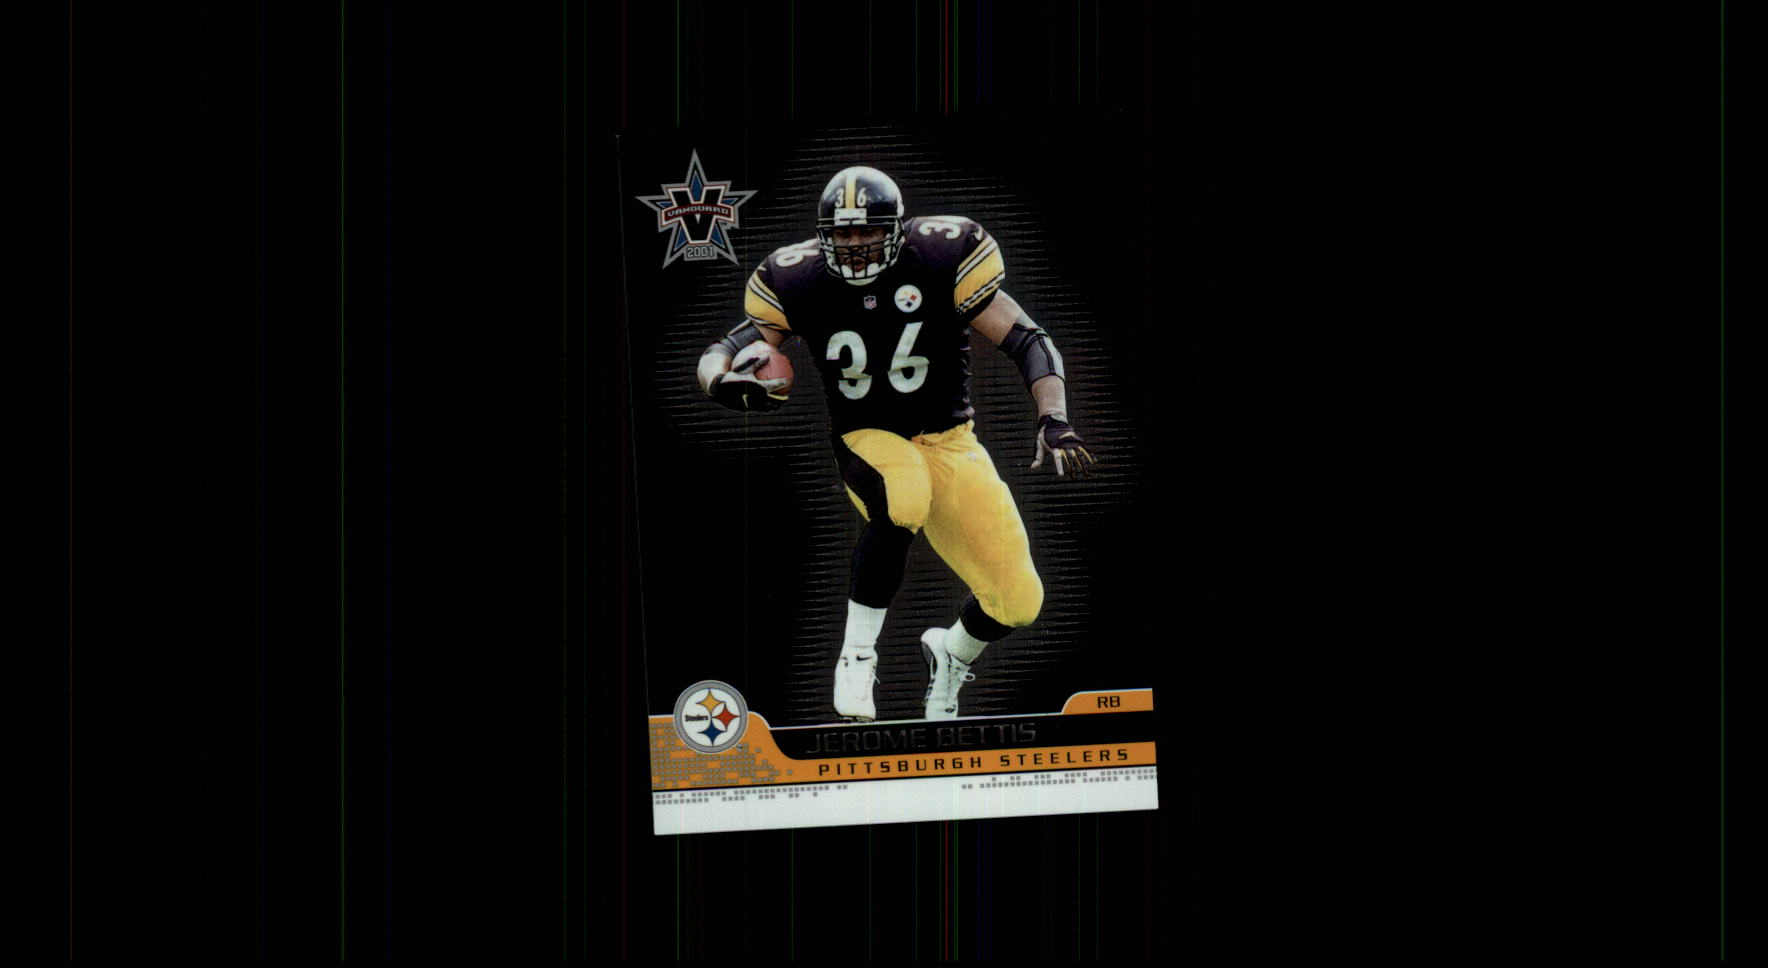 2001 Vanguard #74 Jerome Bettis